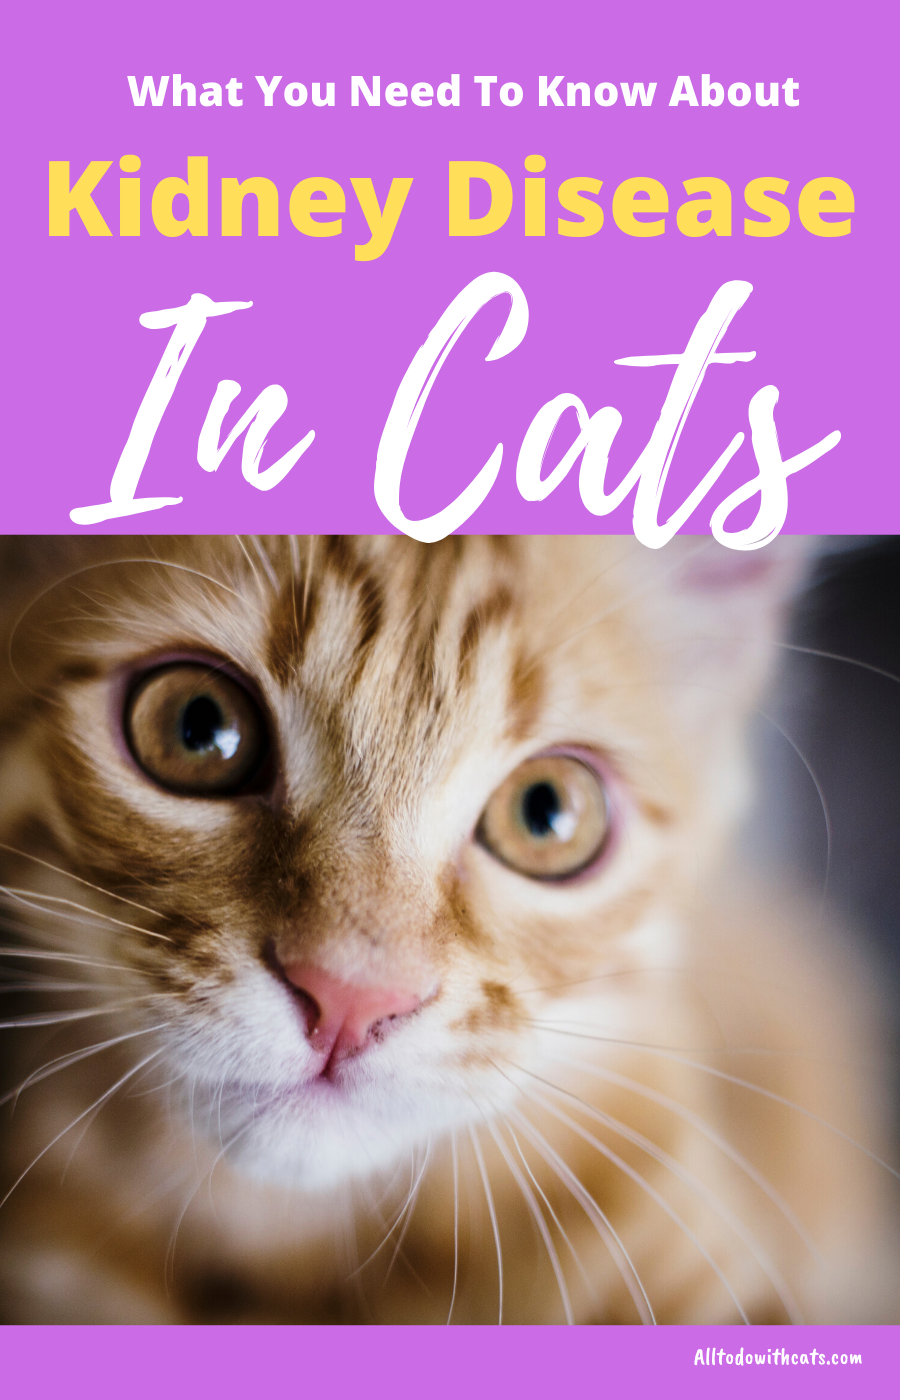 Kidney Disease Symptoms In Cats What You Need ToKnow